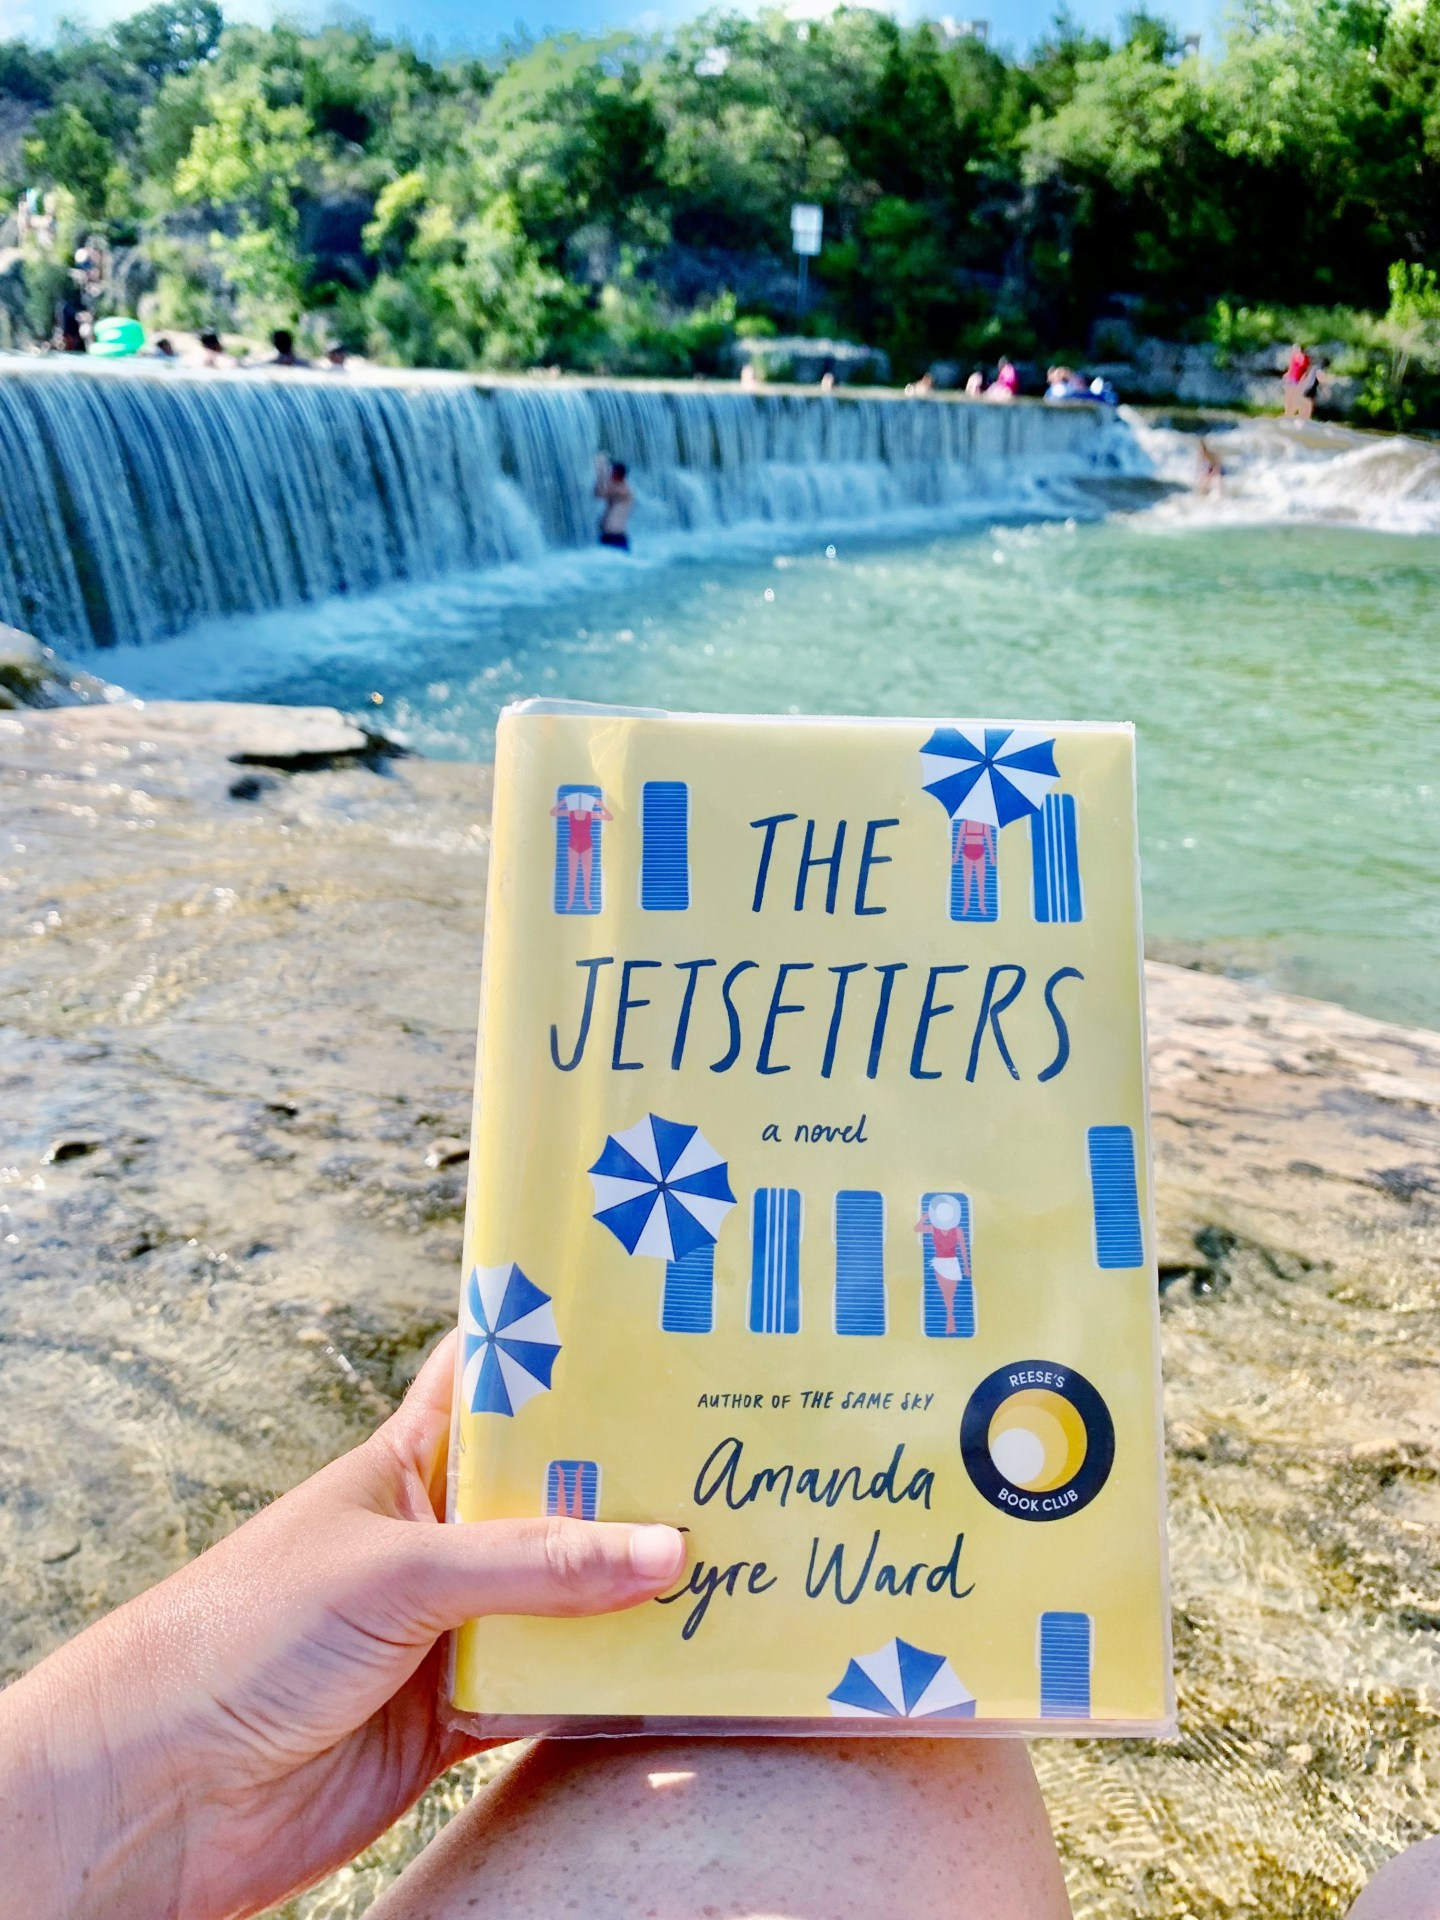 Reading the novel 'Jetsetters' while the kids swim in the San Gabriel river.